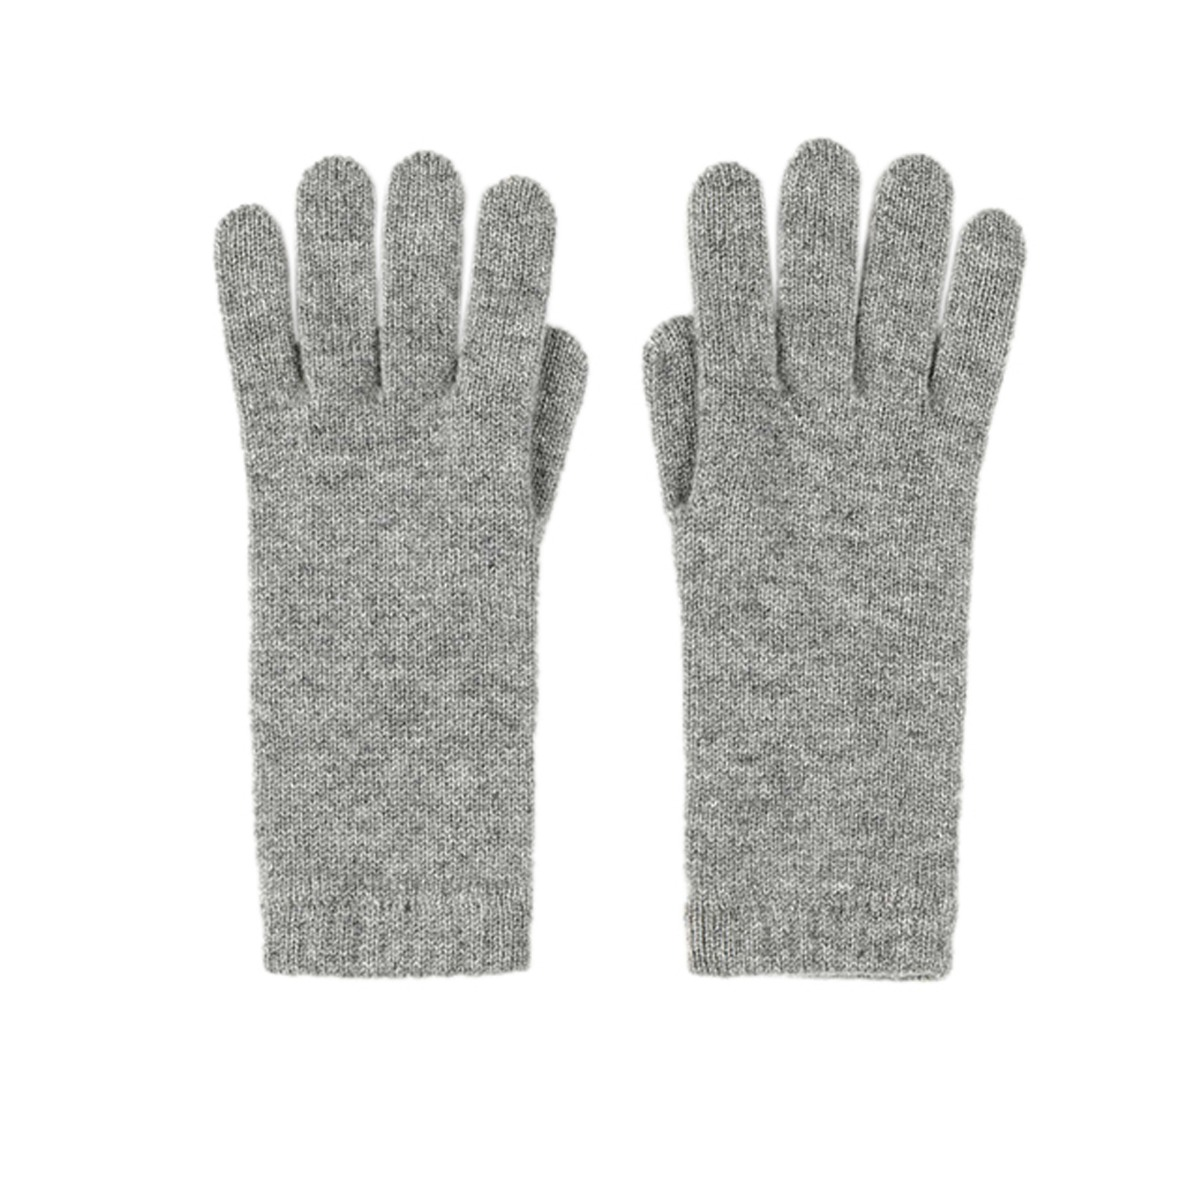 Light grey cashmere women's gloves